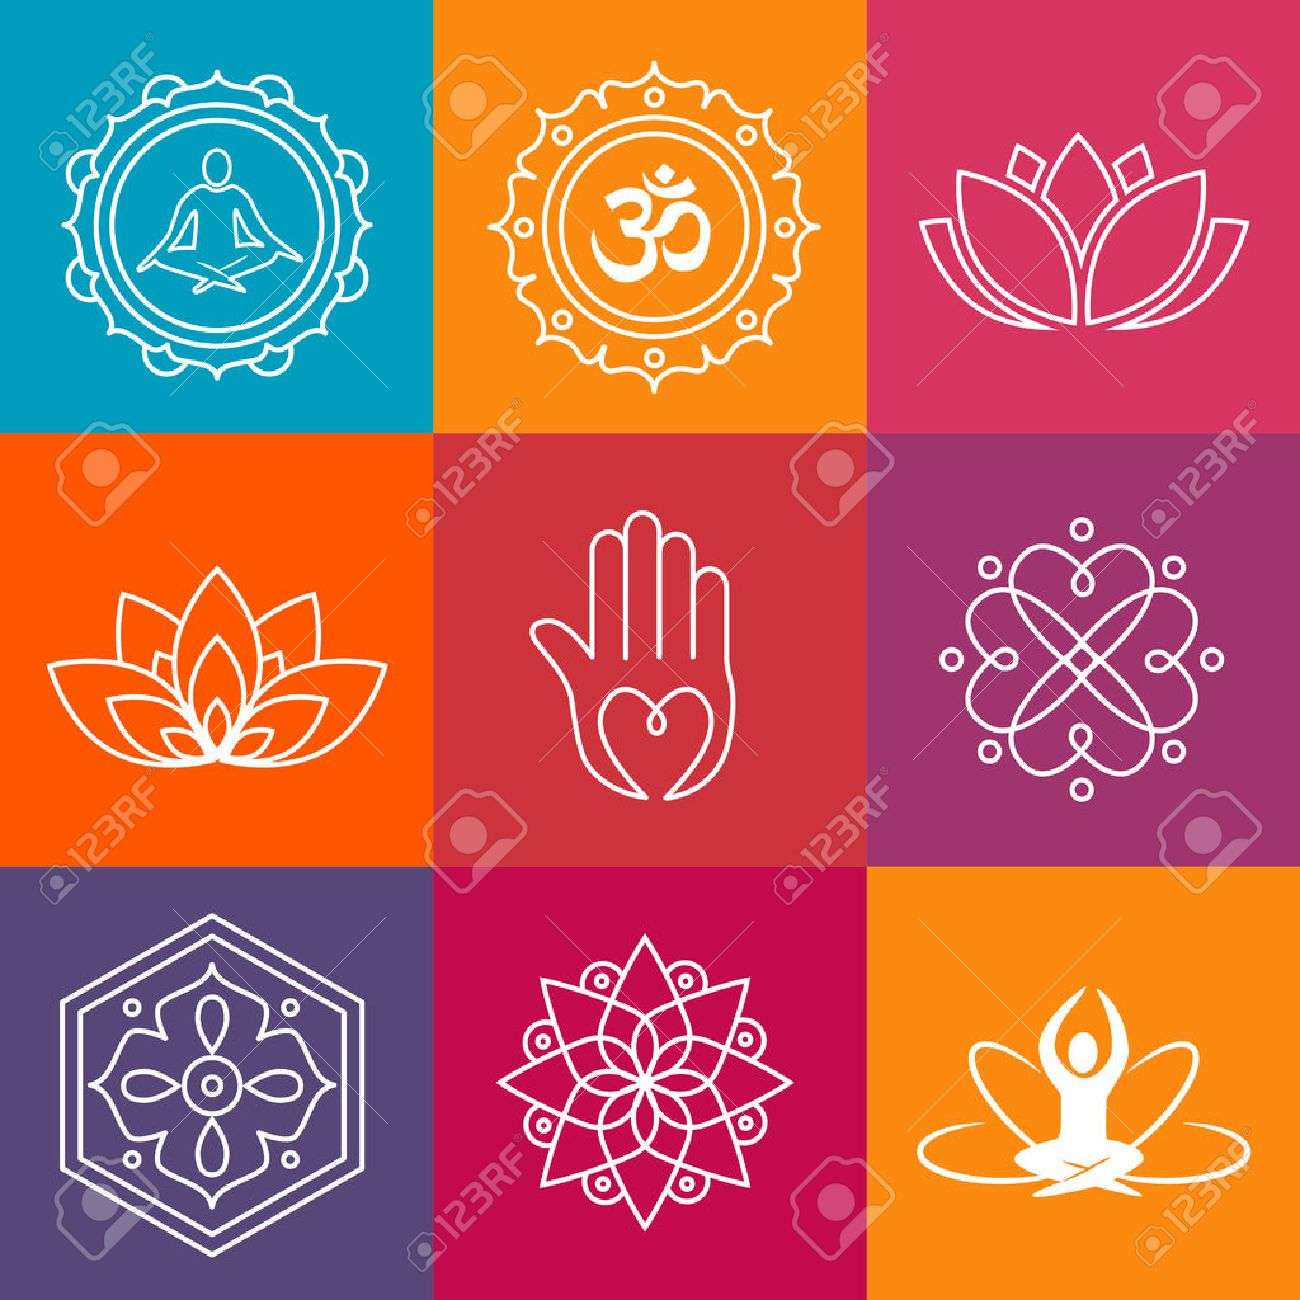 Collection Of Yoga Icons And Relaxation Symbols Royalty Free Cliparts Vectors And Stock Illustration Image 50454829